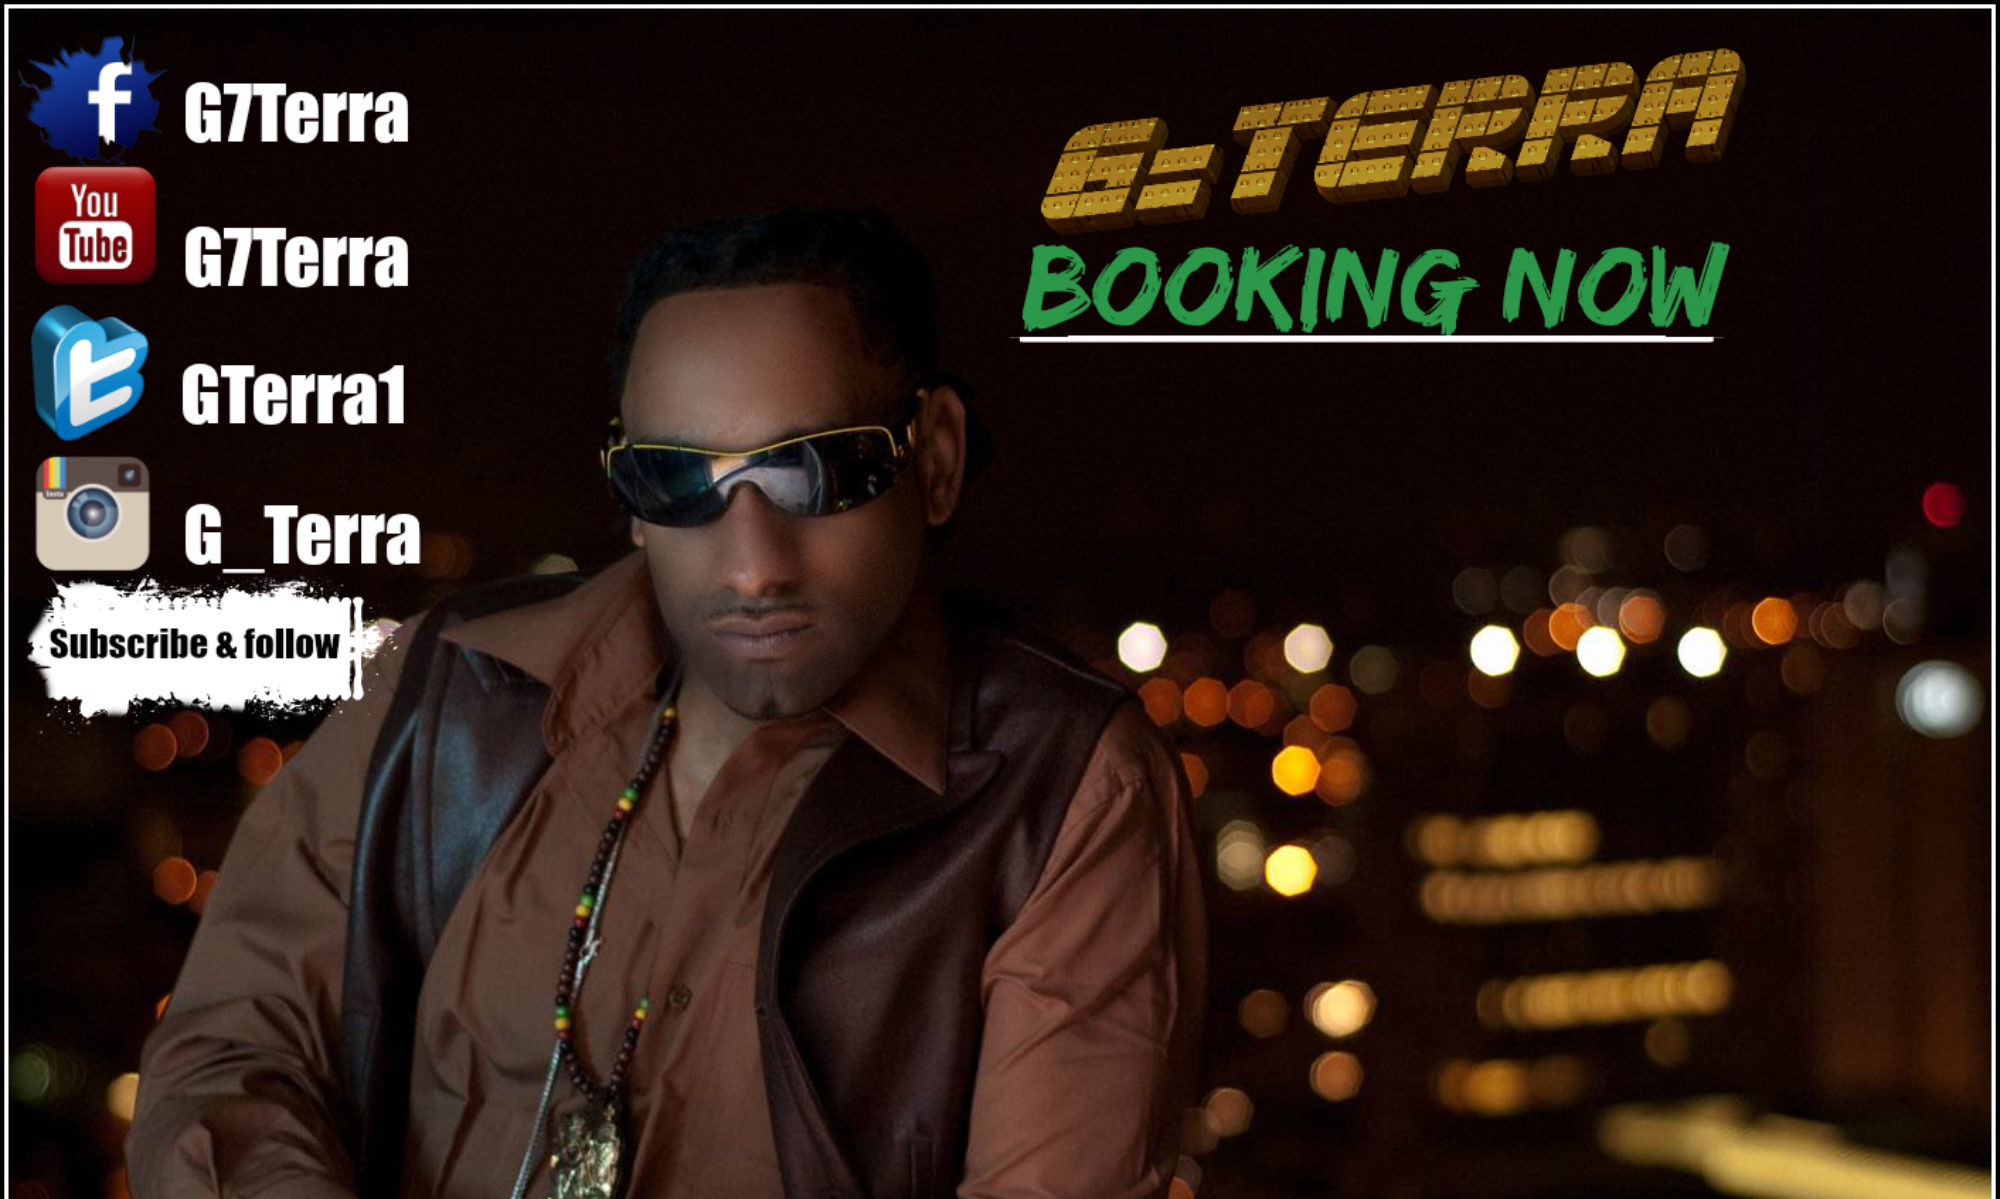 Terra Entertainment Group